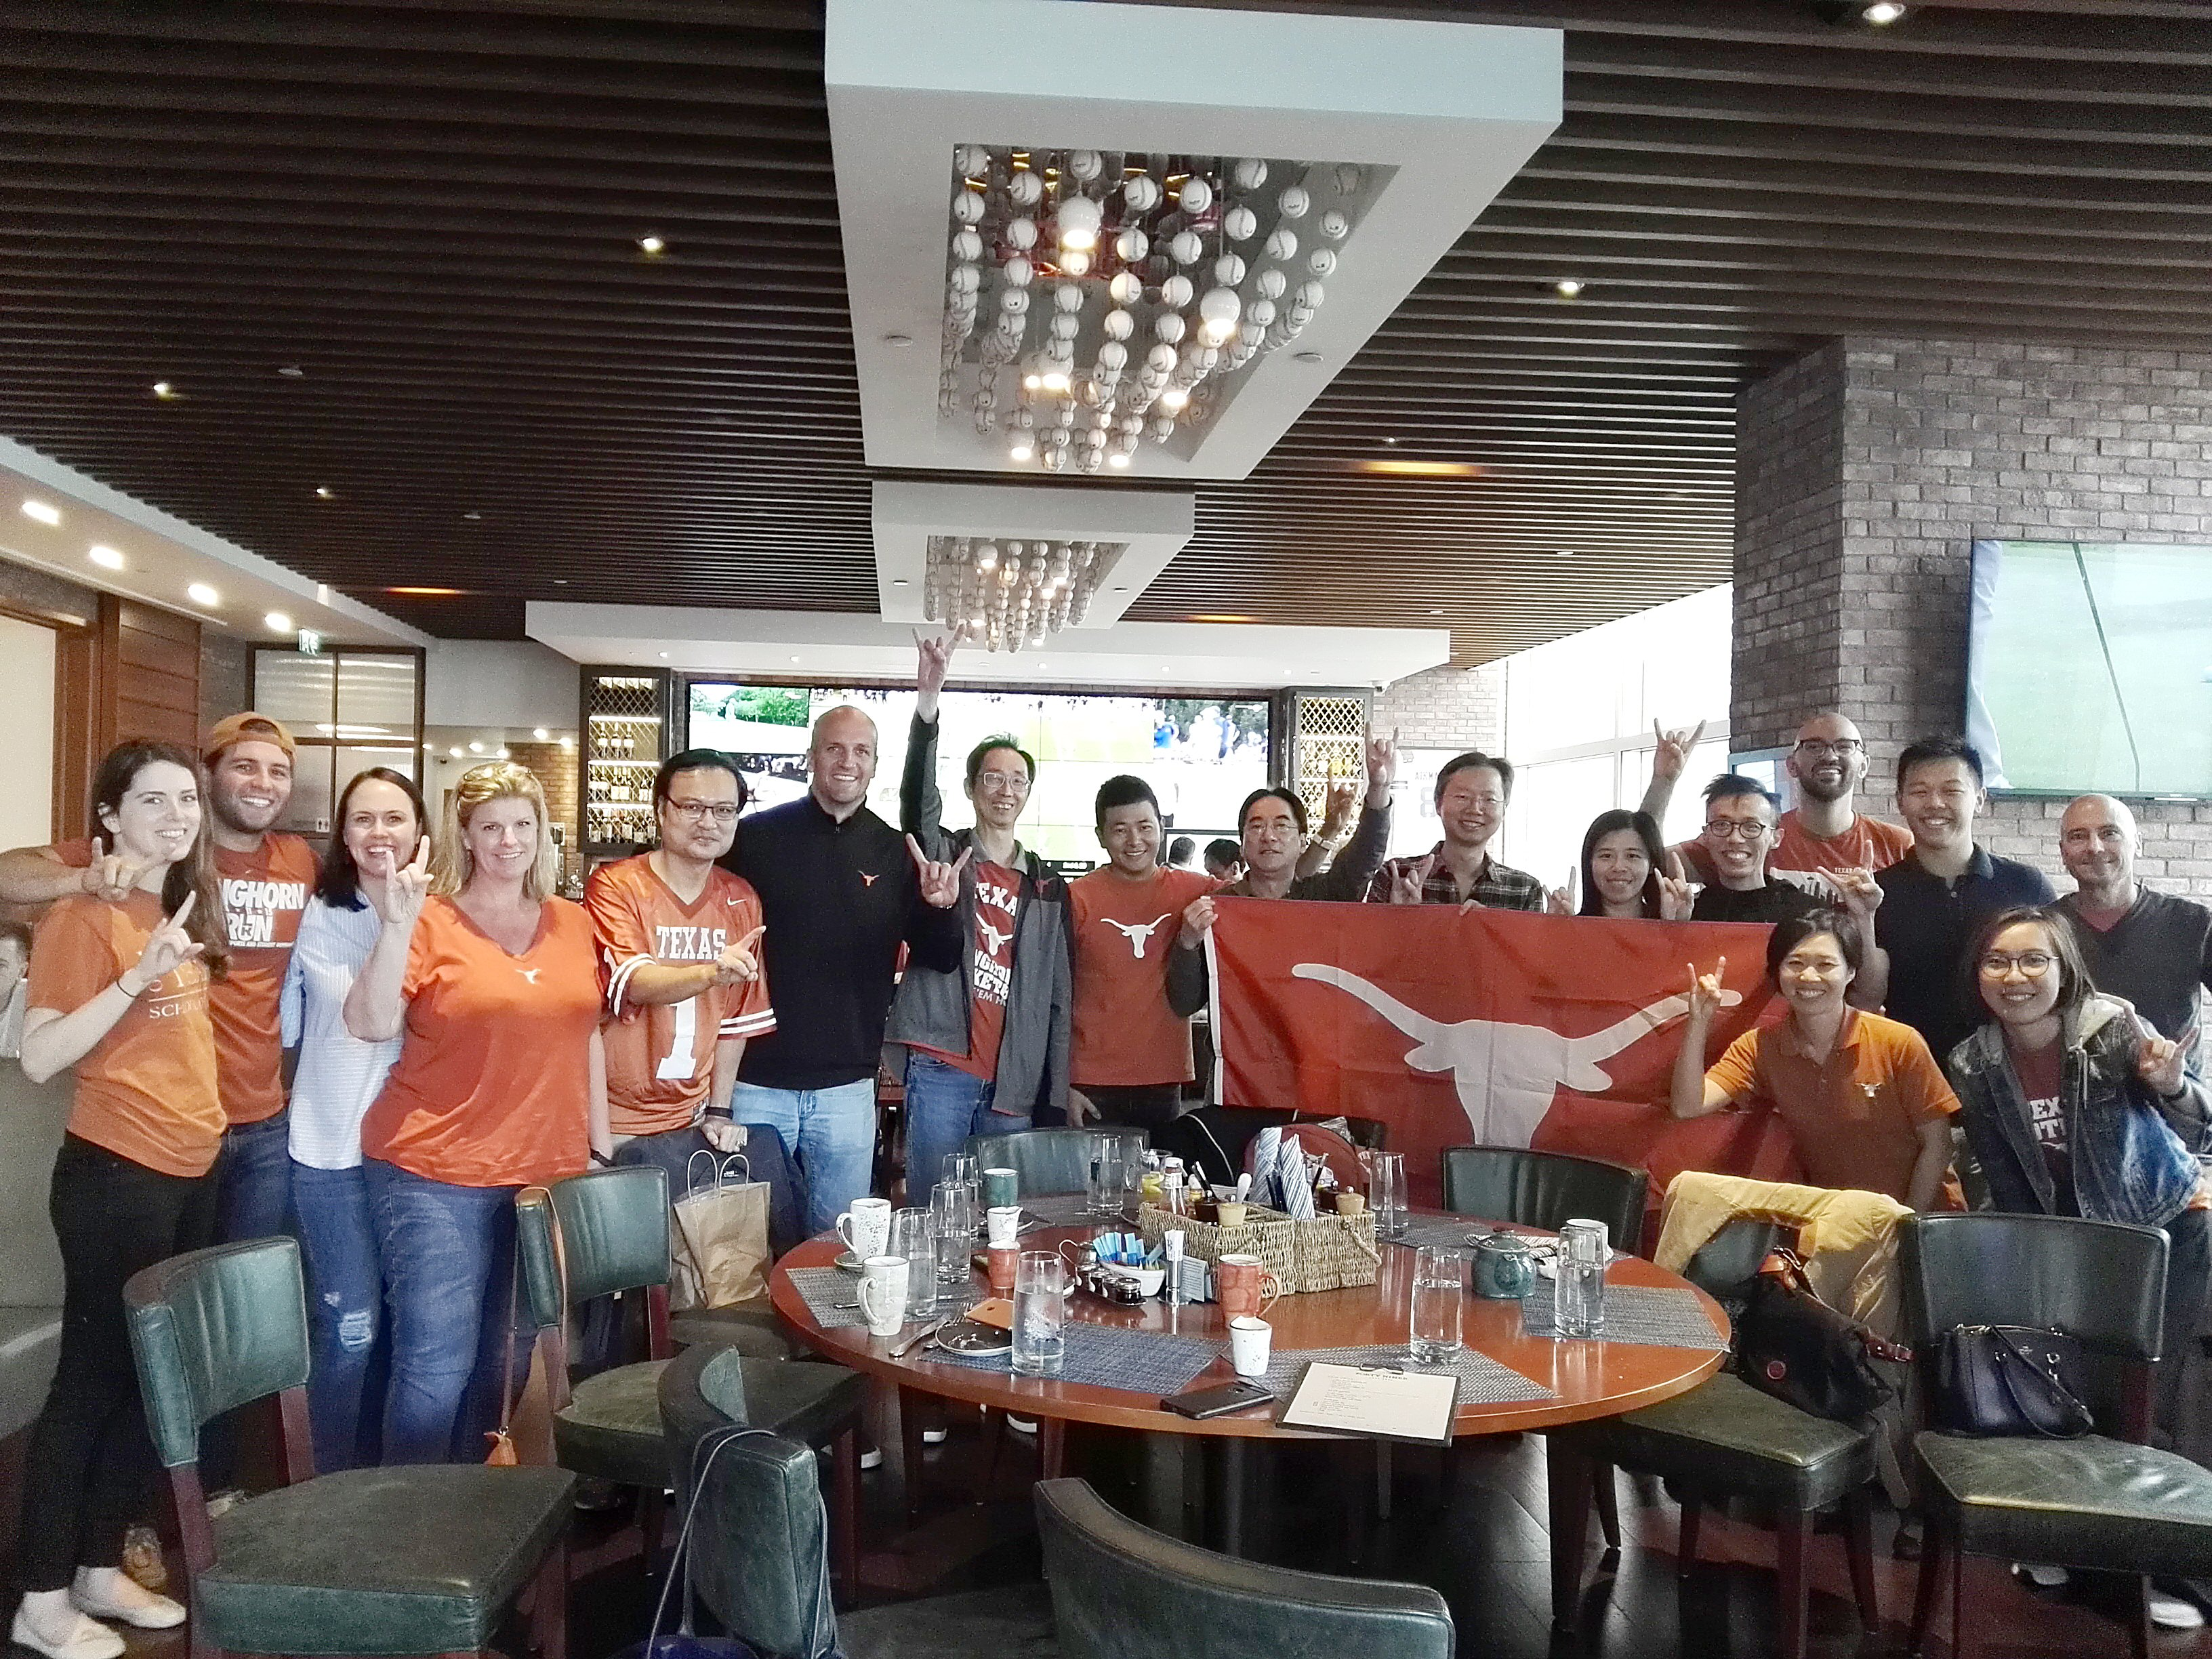 Iowa State at Texas Football Watching Party